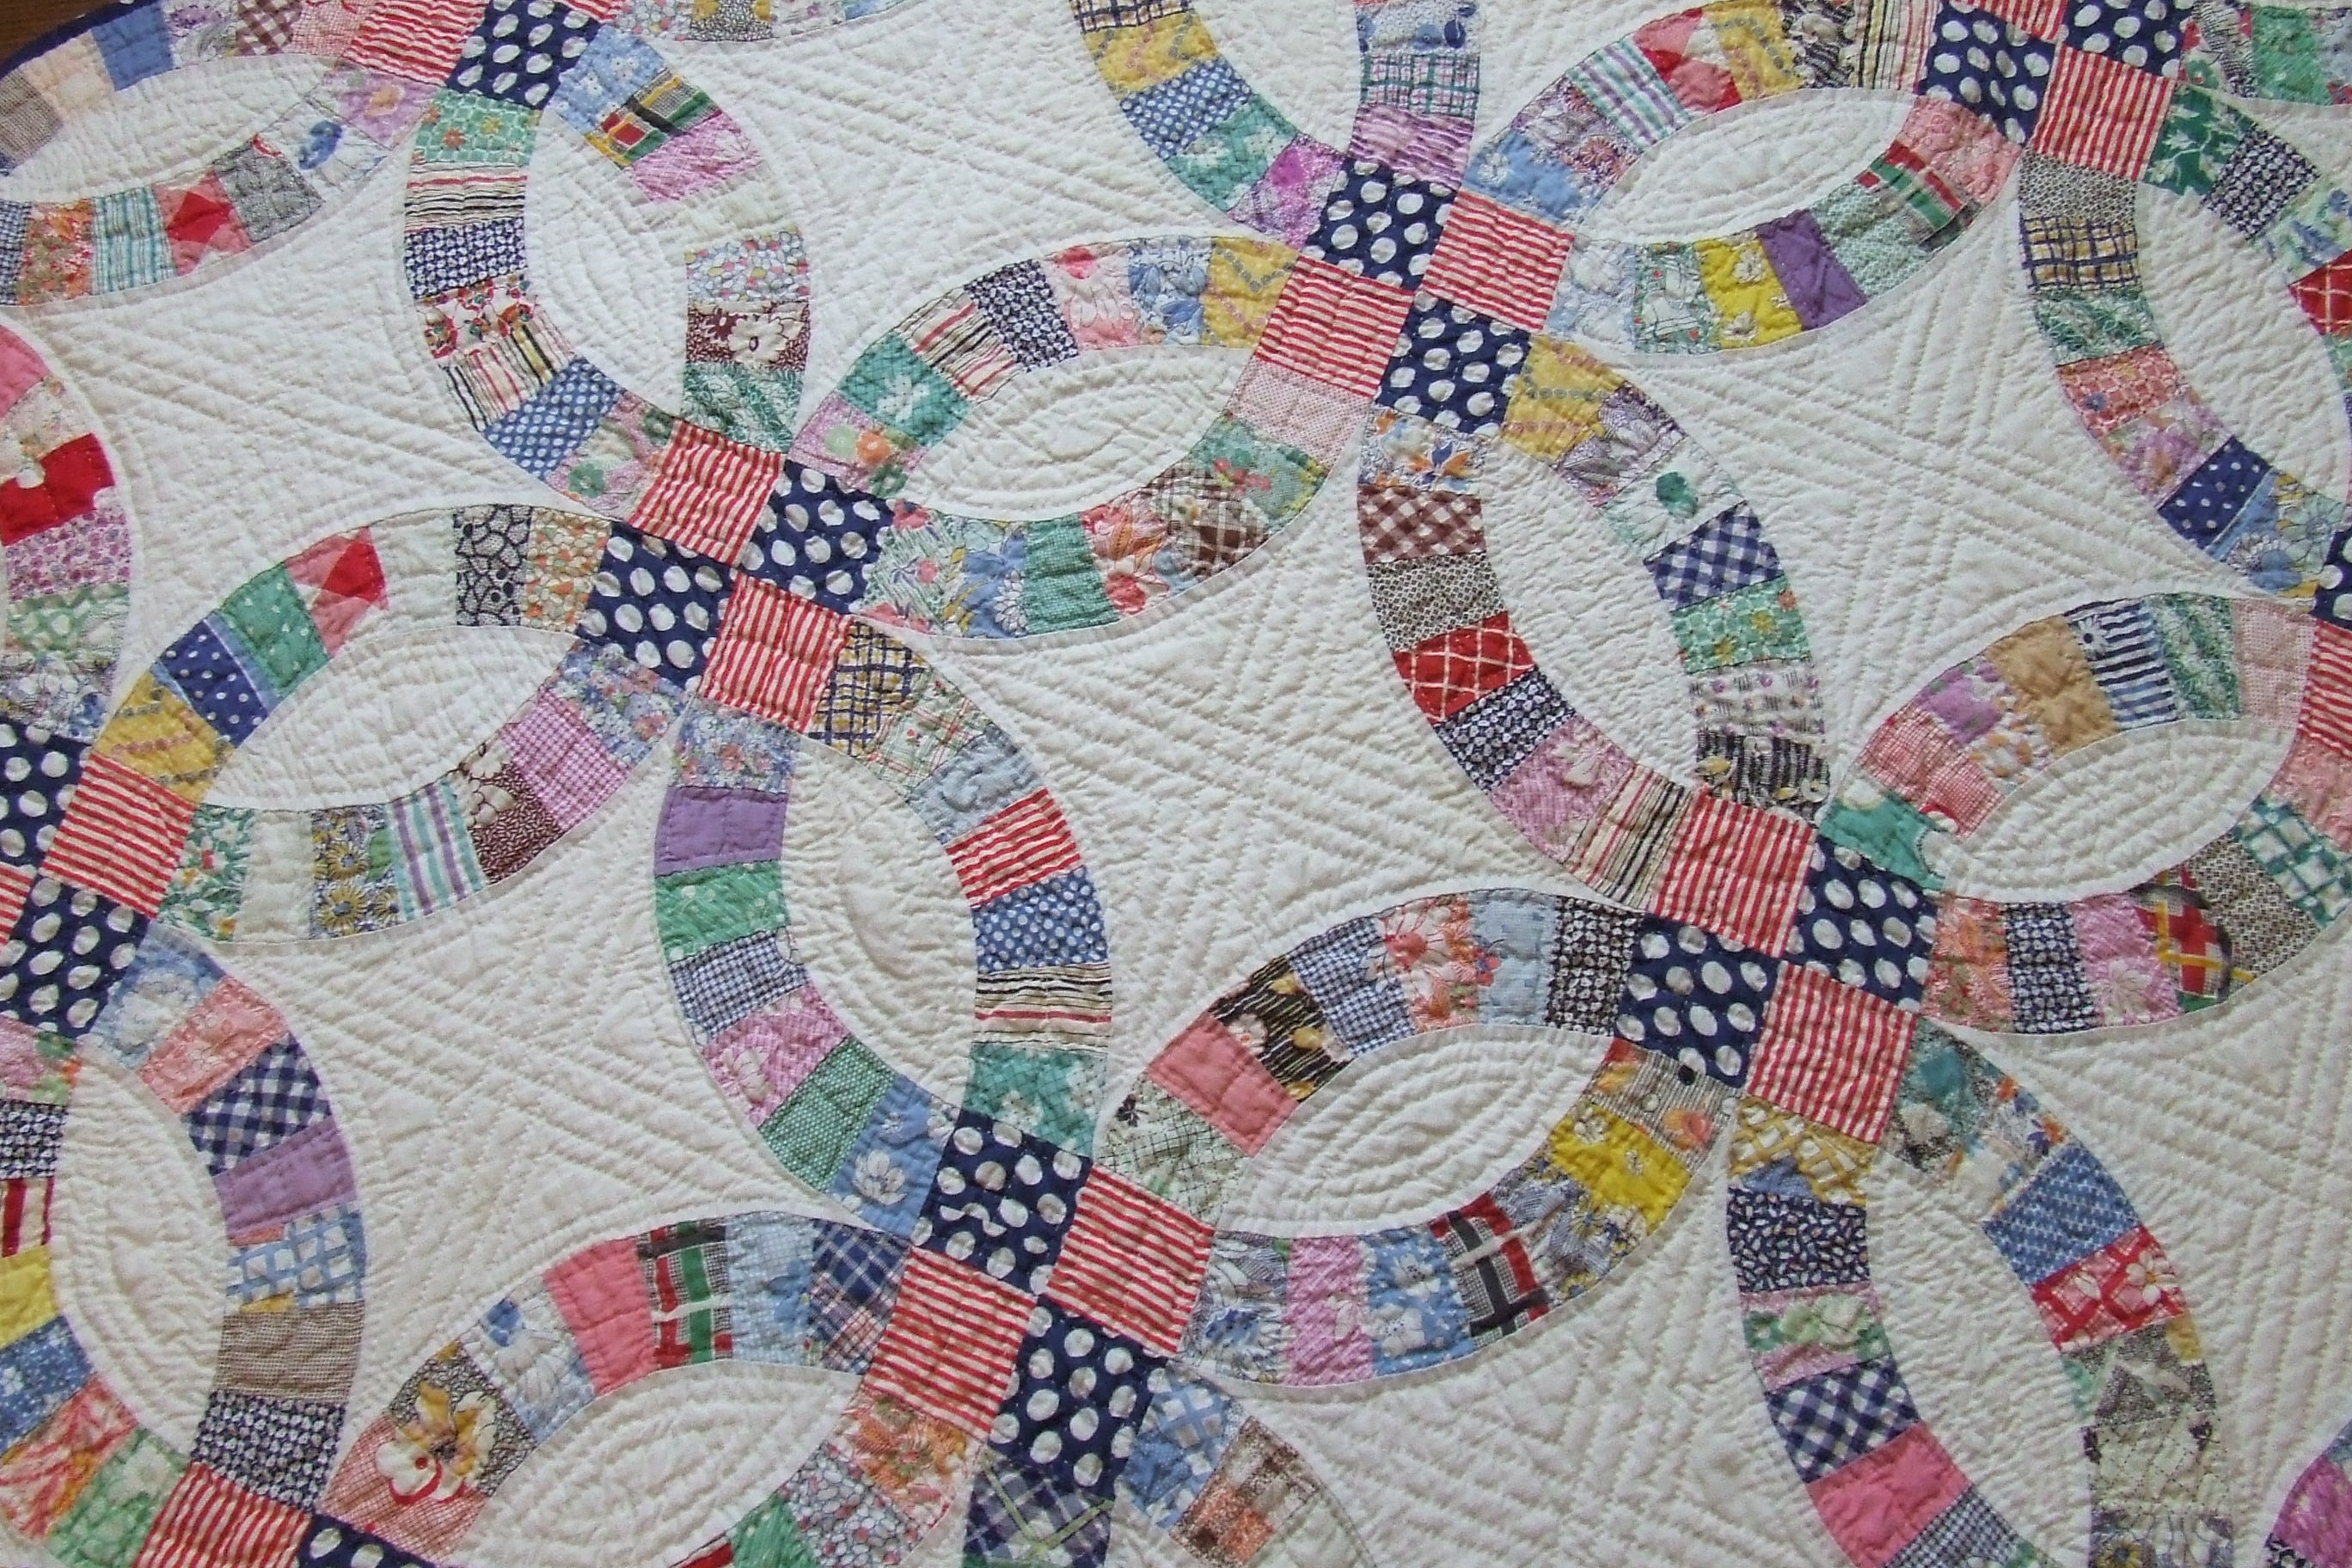 2010_07187 18 10 weddingring0018 - Double Wedding Ring Quilt Pattern